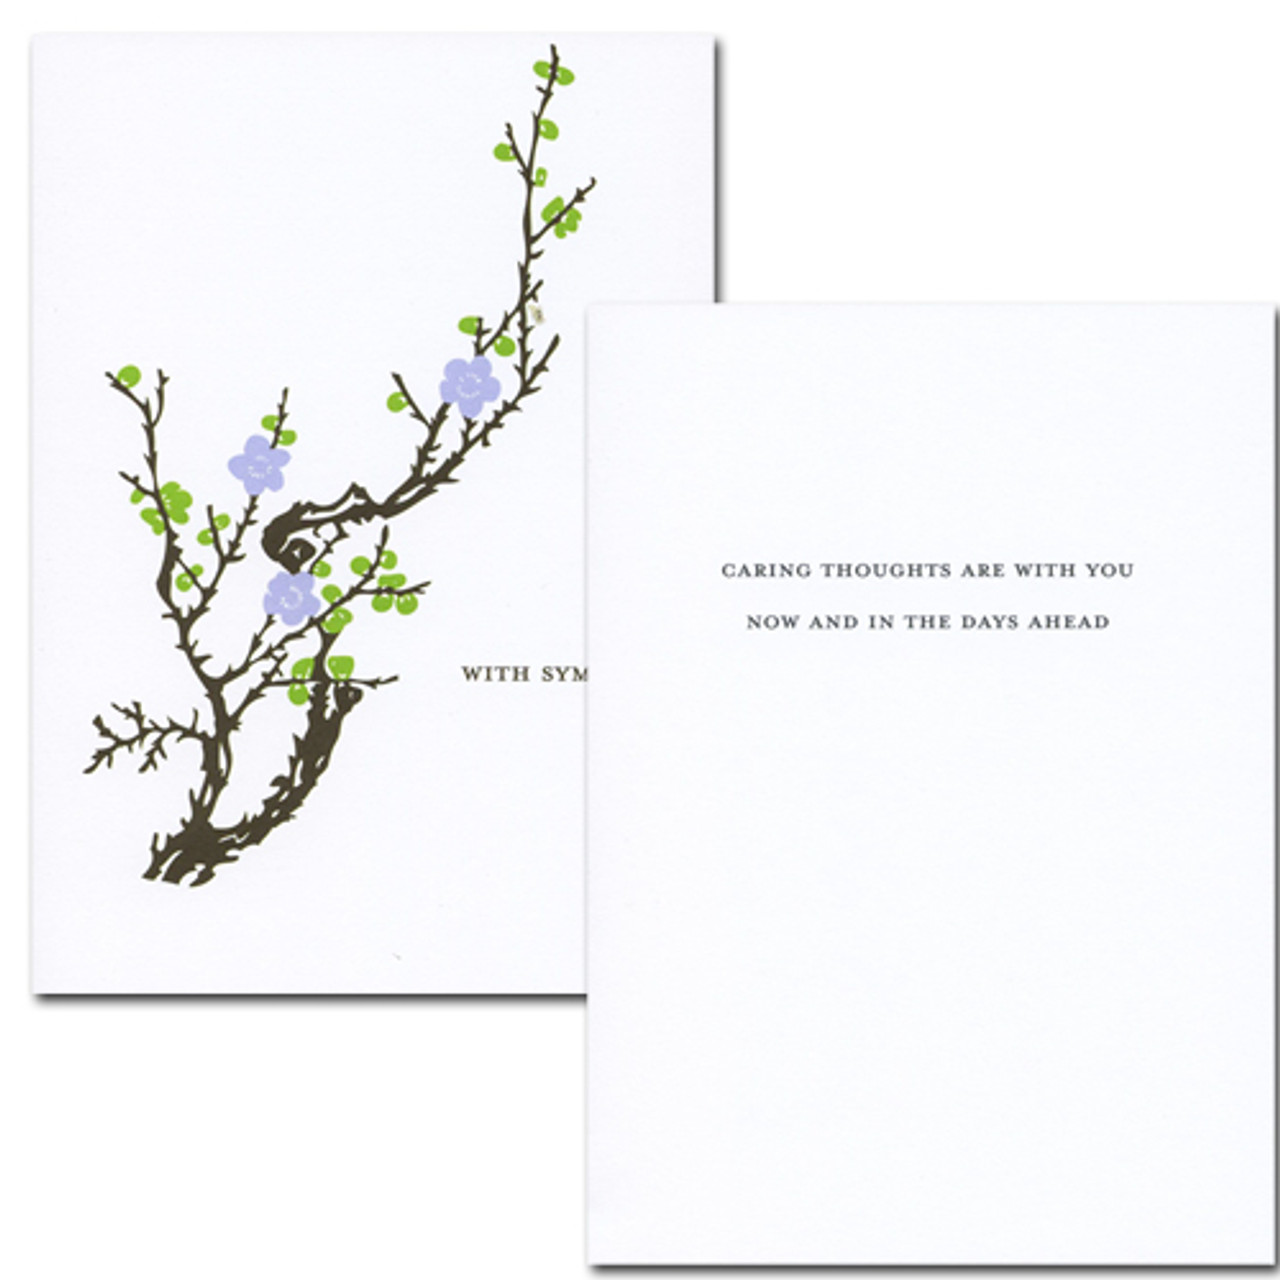 "sympathy card cover shows a design adapted from early 20th century artwork showing a tree branch with emerging spring leaves and blossoms.  Quote is 'With Sympathy'  Sympathy Card -Blooming Branch inside quote is ""Caring thoughts are with you now and in the days ahead"" and space for a get well message from a business associate or medical professional."